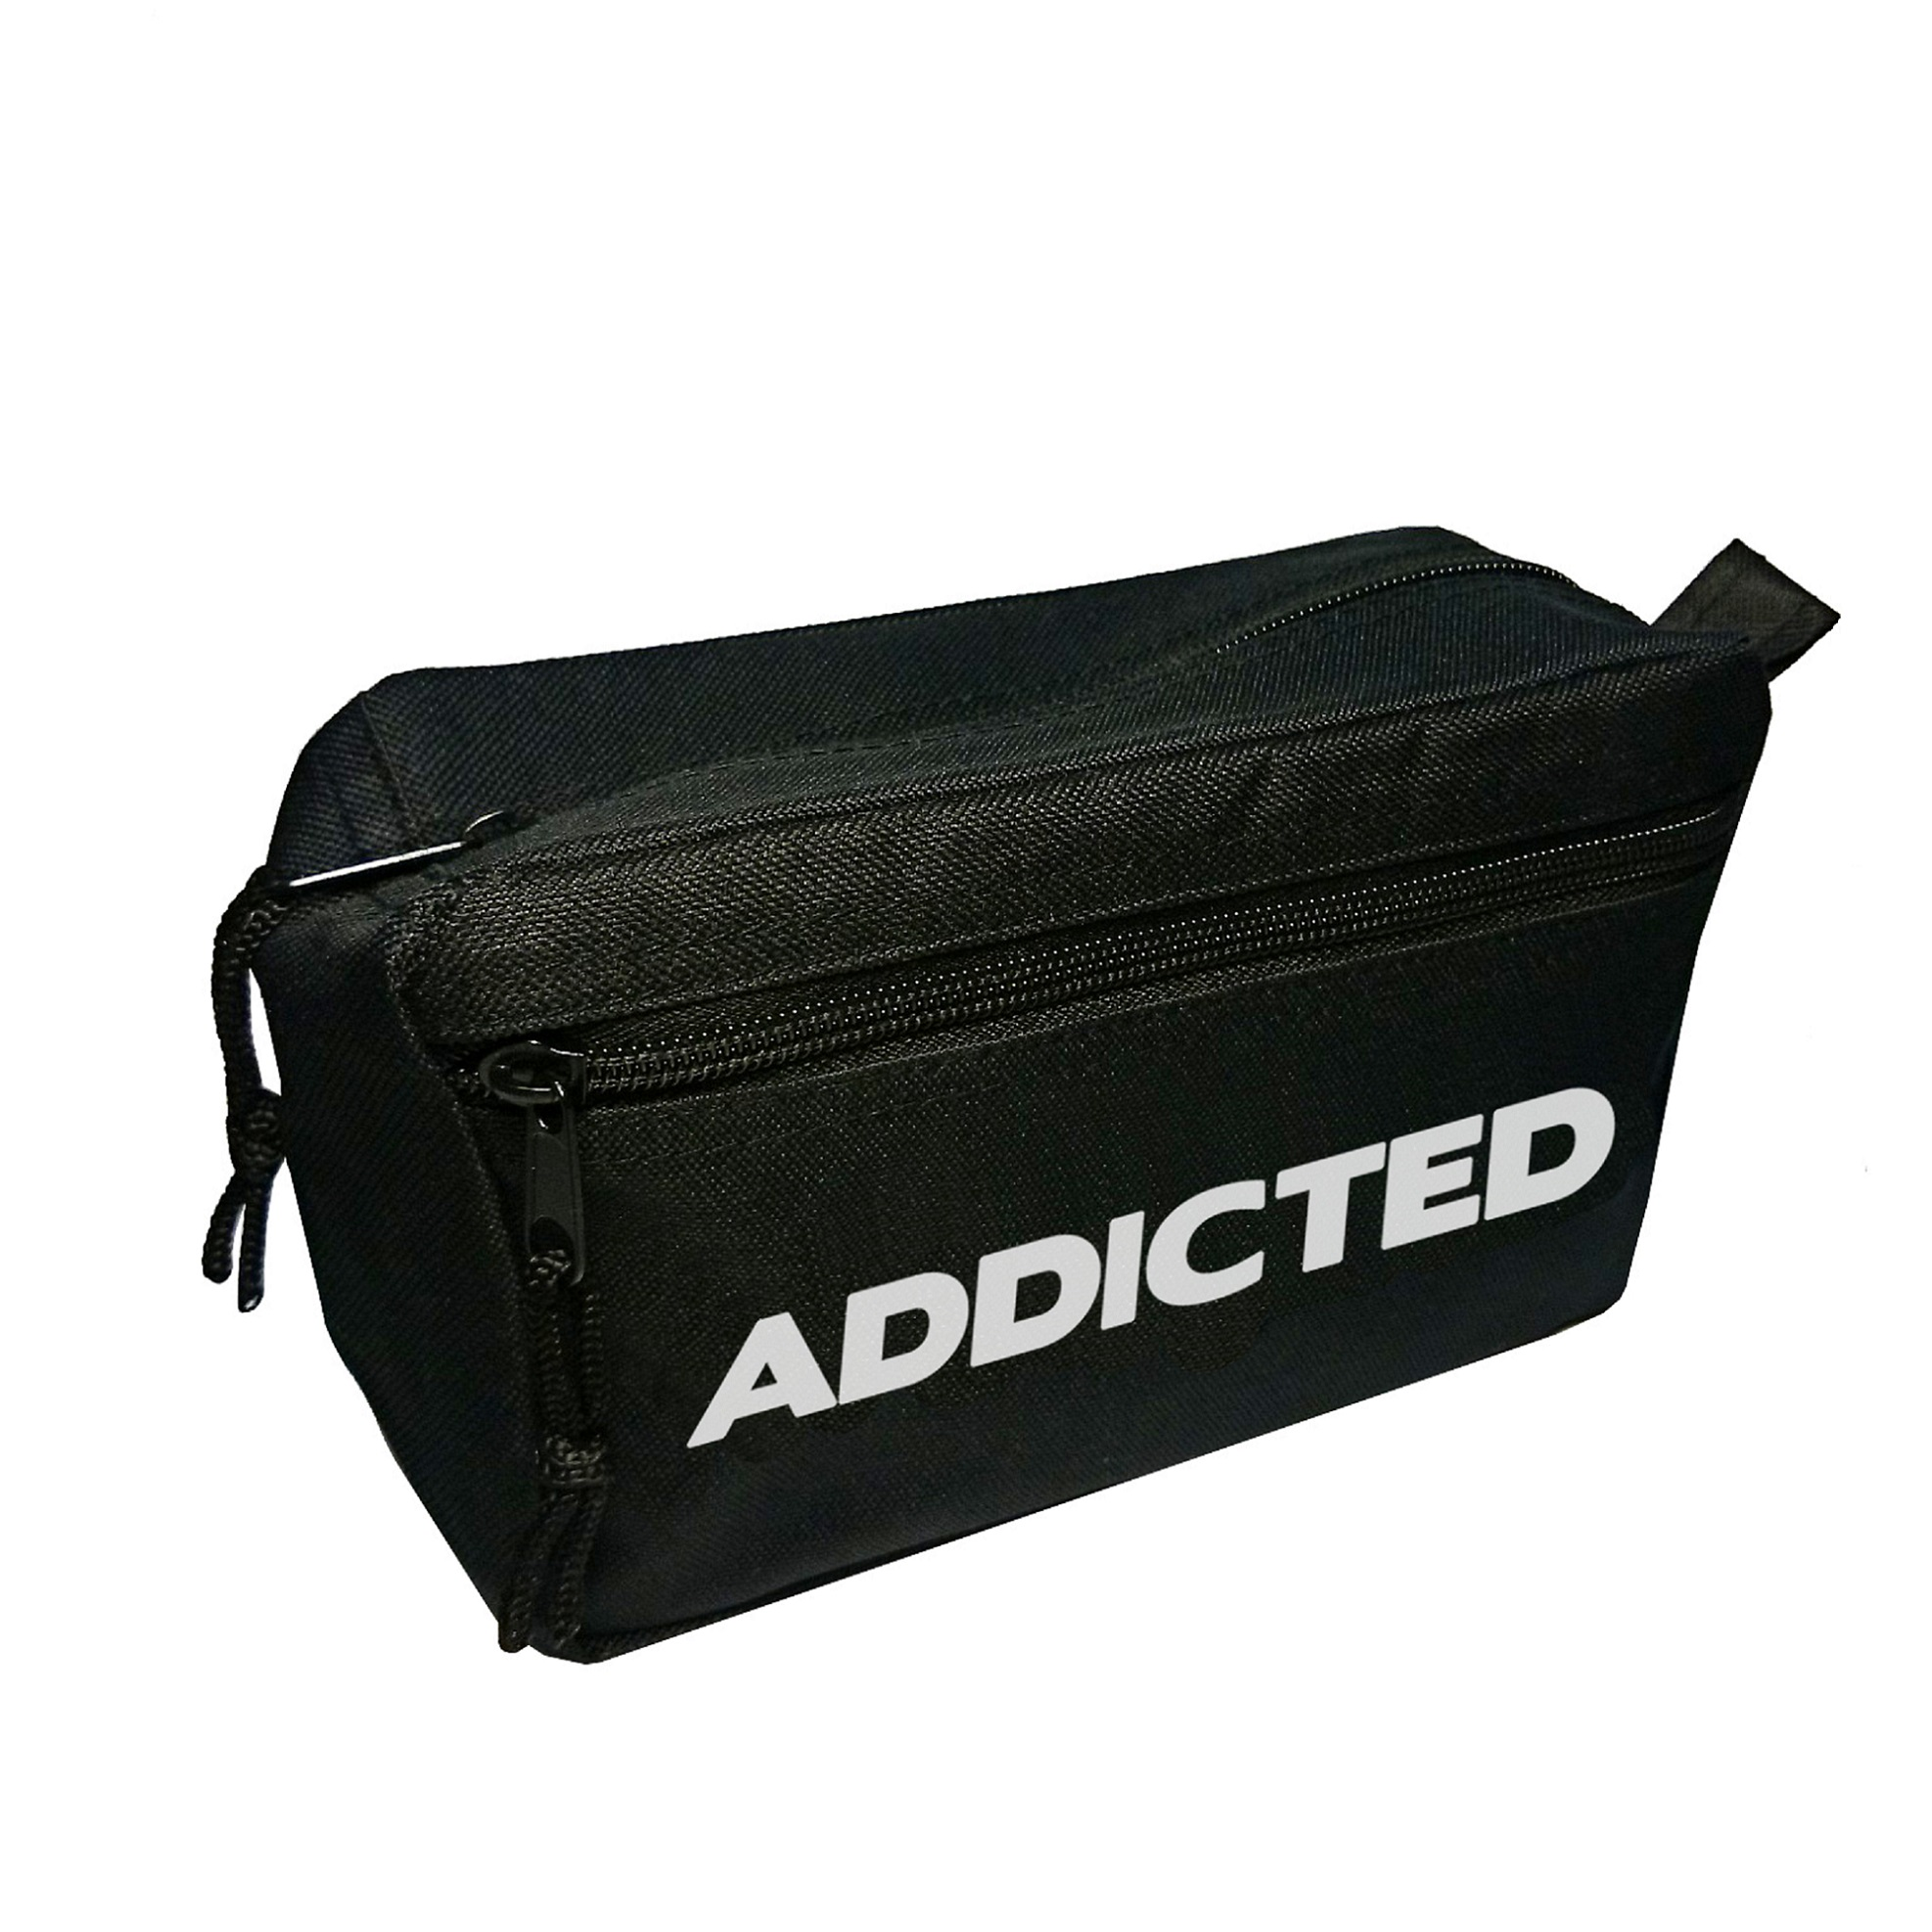 【現貨商品】ADDICTED 輕便包 ES AD DRESSING CASE